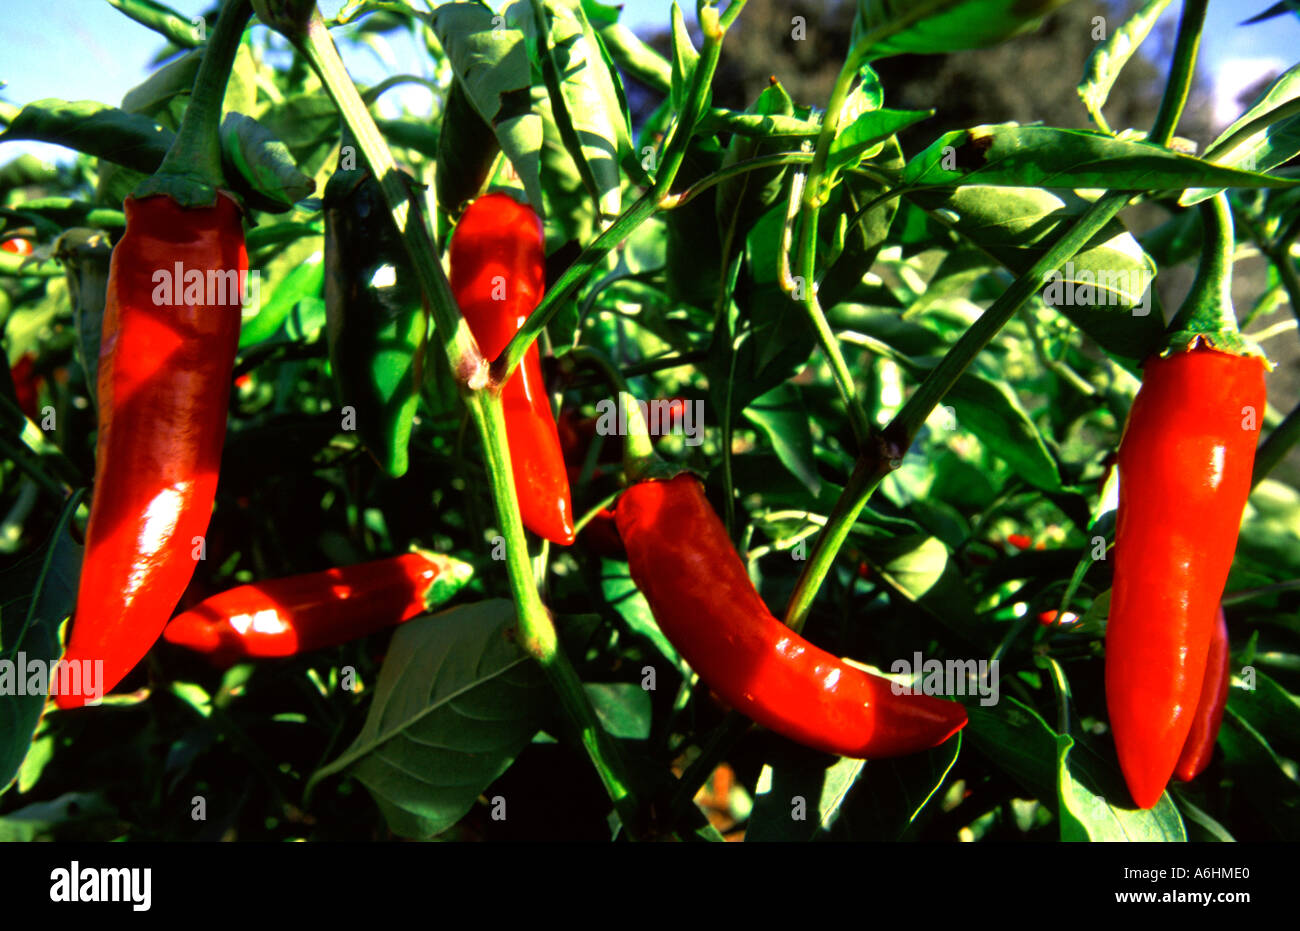 Red chili pepper.Guadalajara.Mexico - Stock Image